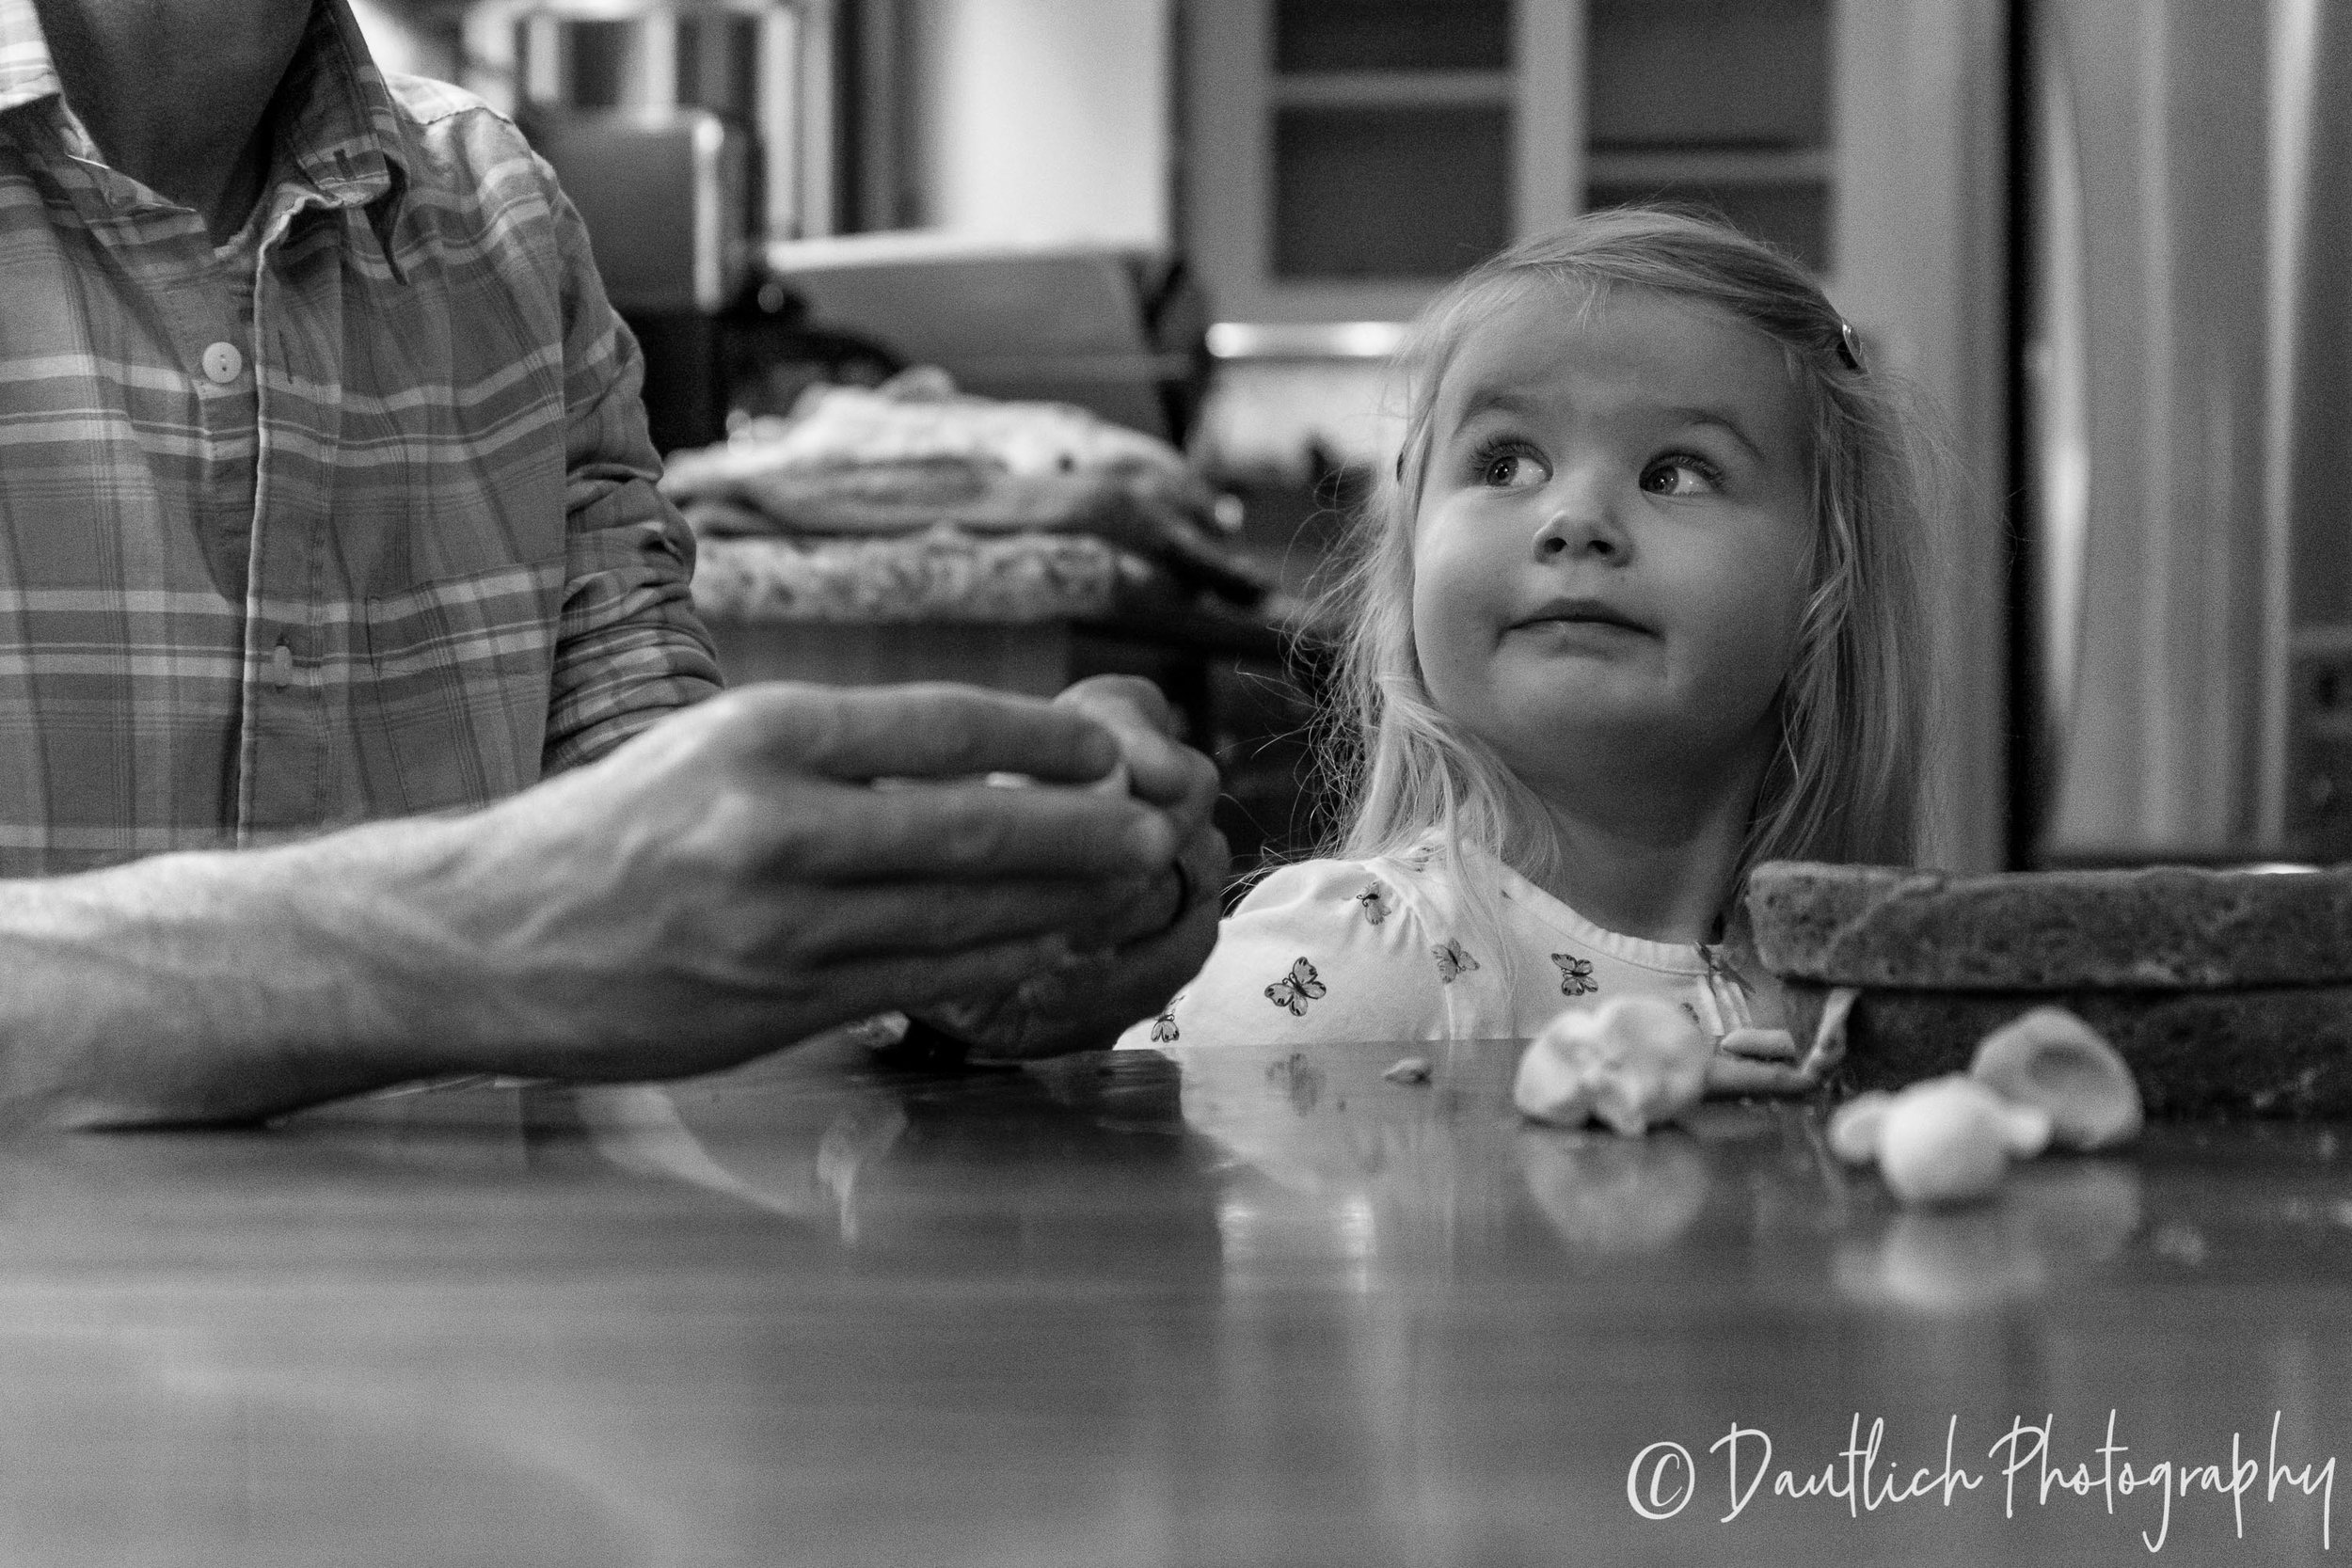 Toddler makes a silly face at dad as he makes figures out of fondant.